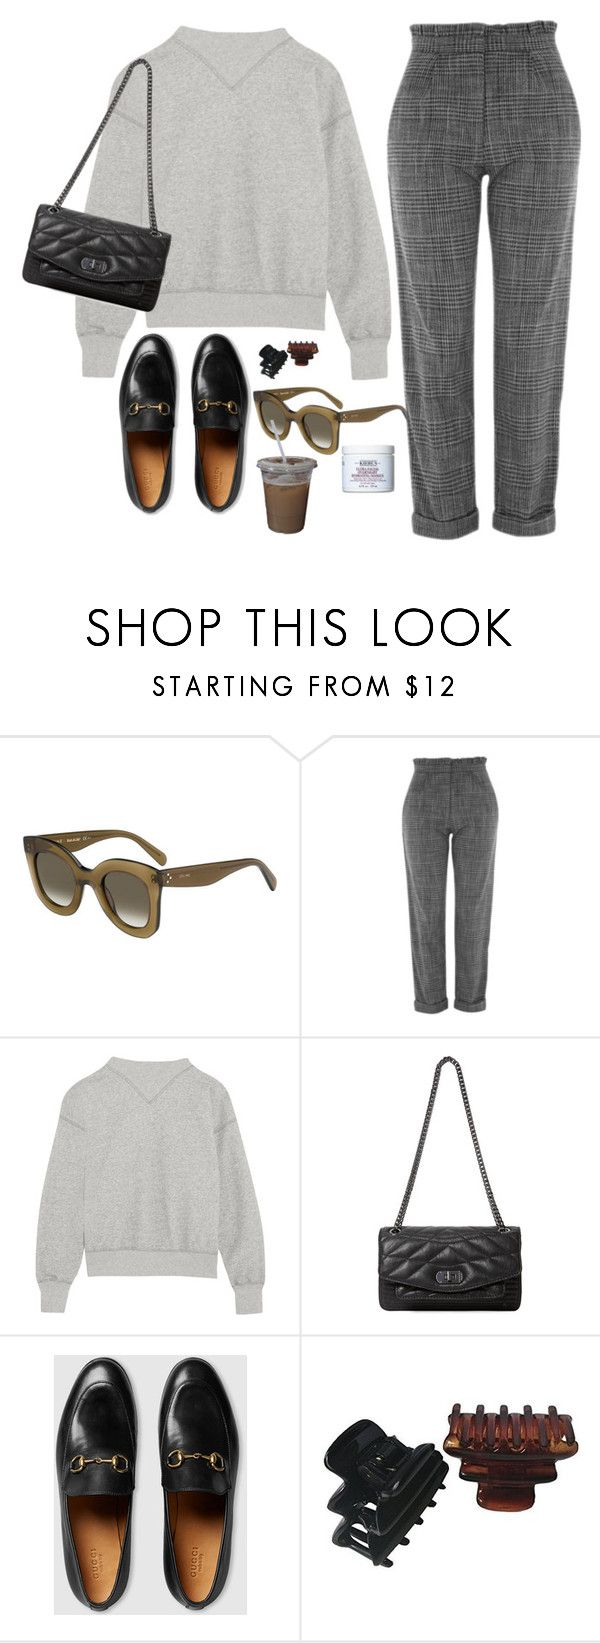 """Untitled #1932"" by mmooa ❤ liked on Polyvore featuring CÉLINE, Topshop, Étoile Isabel Marant, Zadig & Voltaire, Gucci and Kiehl's"